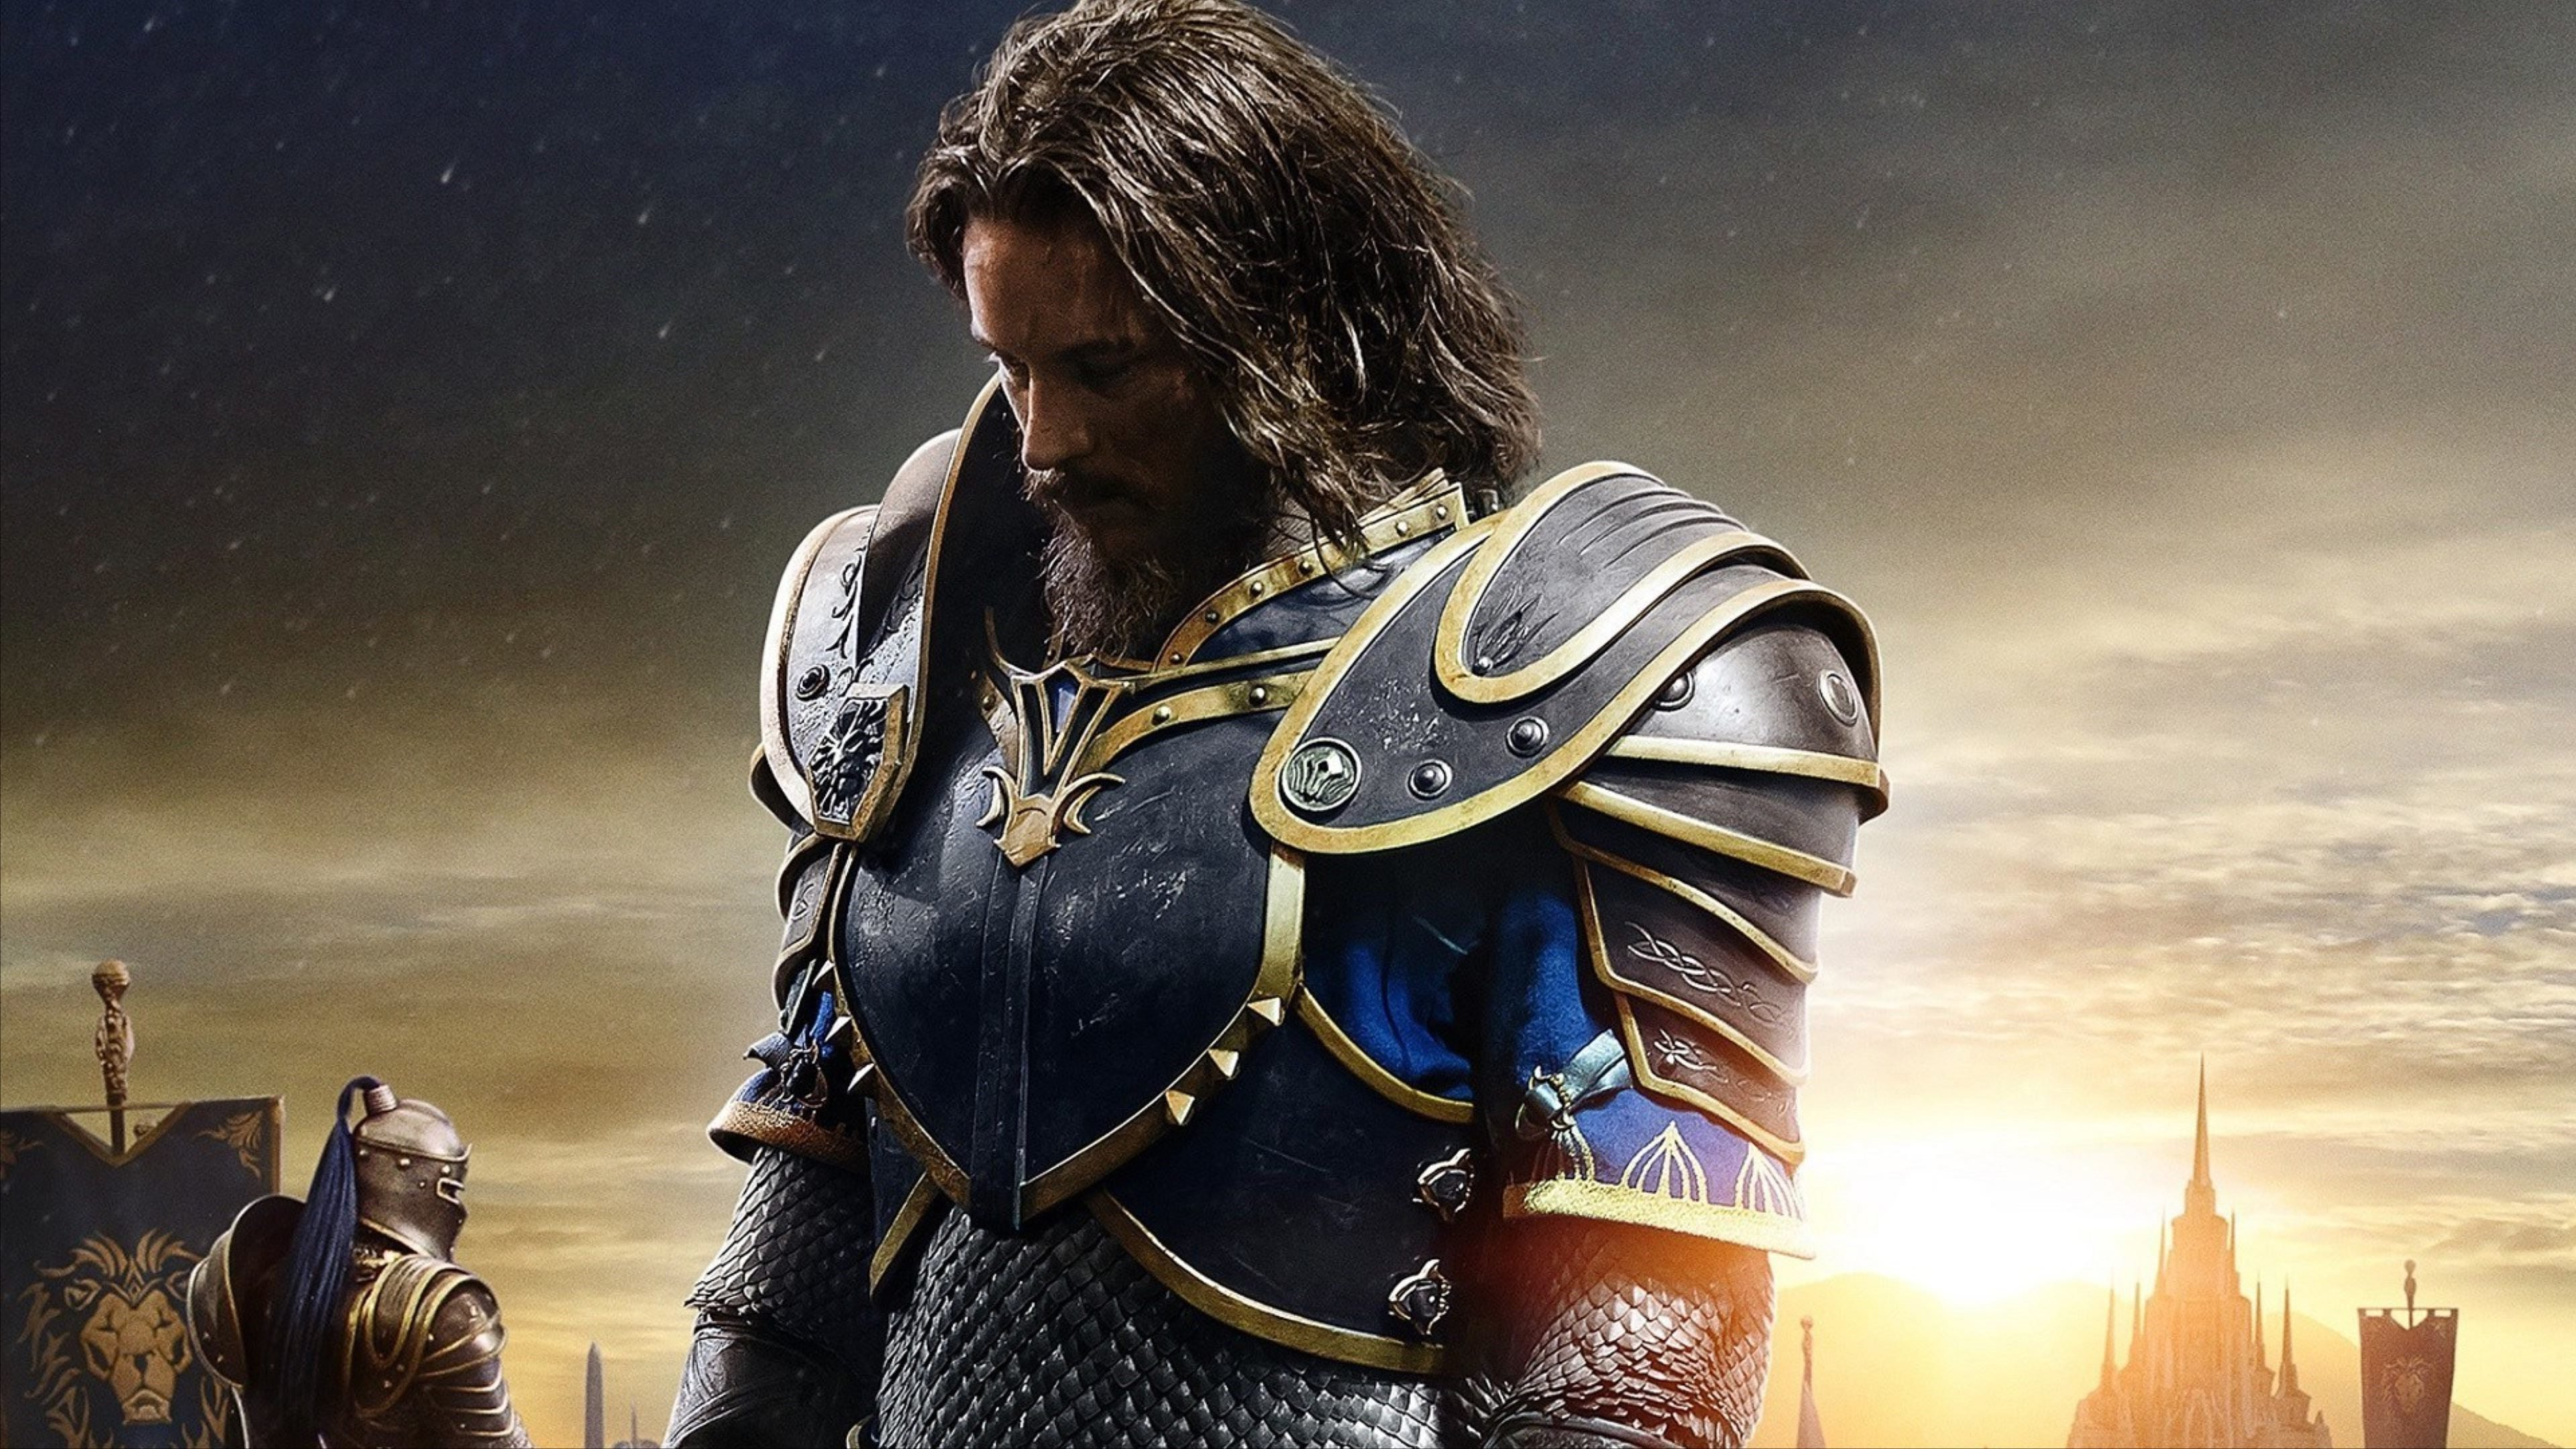 anduin-lothar-in-warcraft-movie